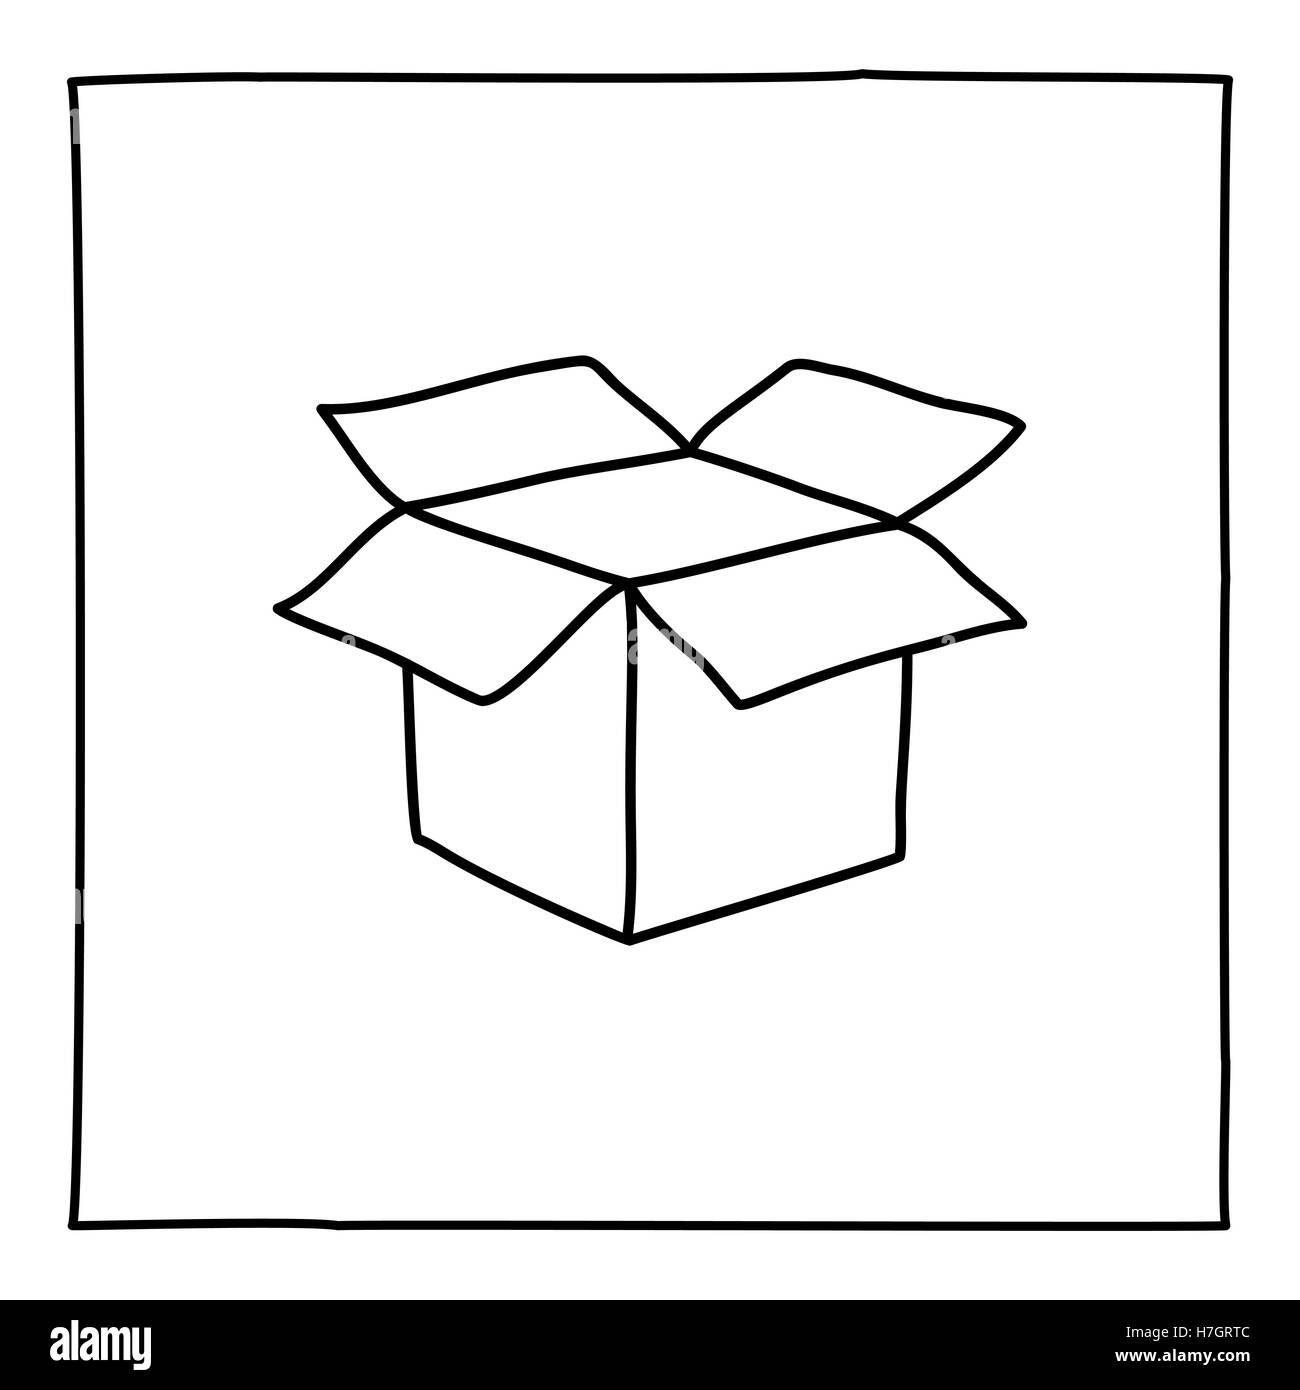 Single Line Box Art : Doodle open box icon black and white symbol with frame